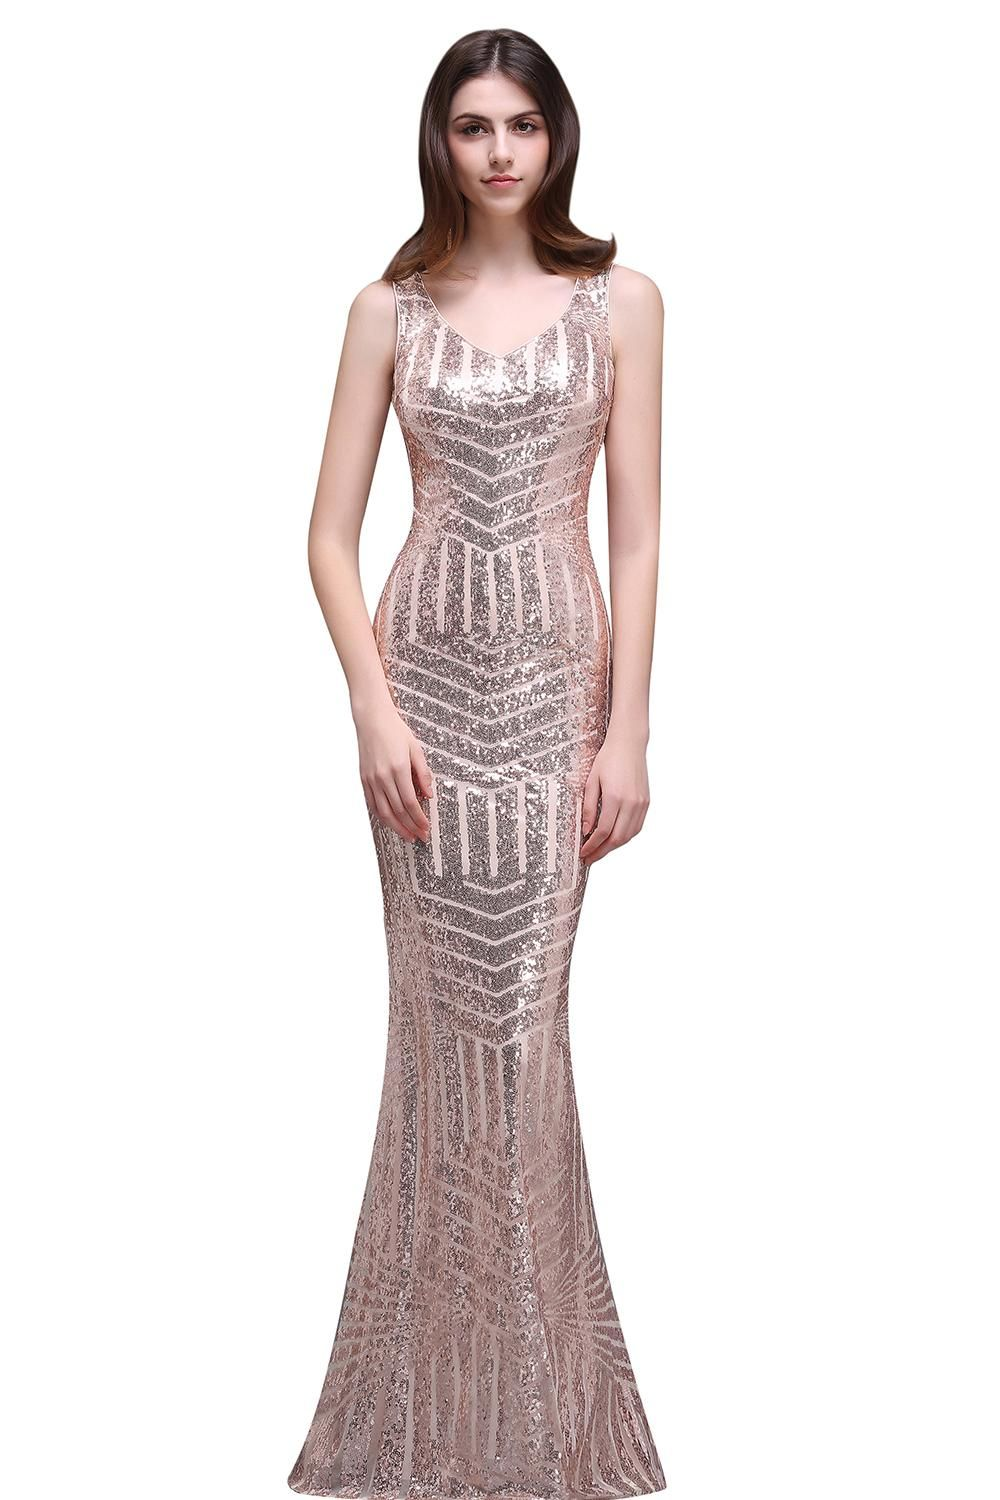 special design rose gold sequins evening dresses v neck floor